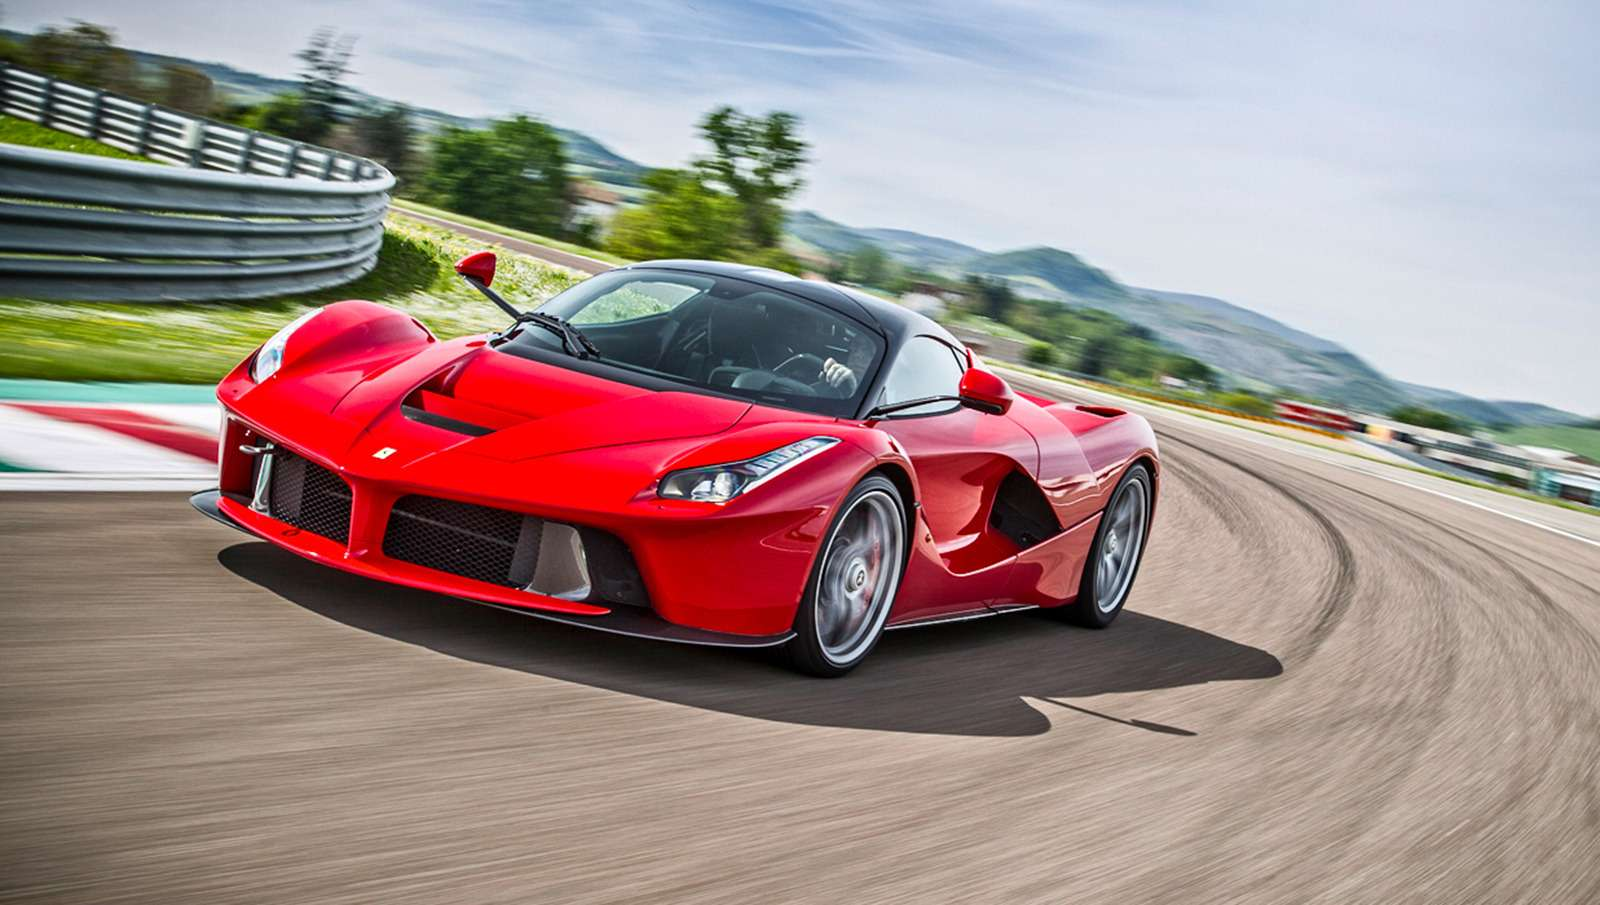 2014-ferrari-laferrari-first-drive-review-car-and-driver-photo-584762-s-original